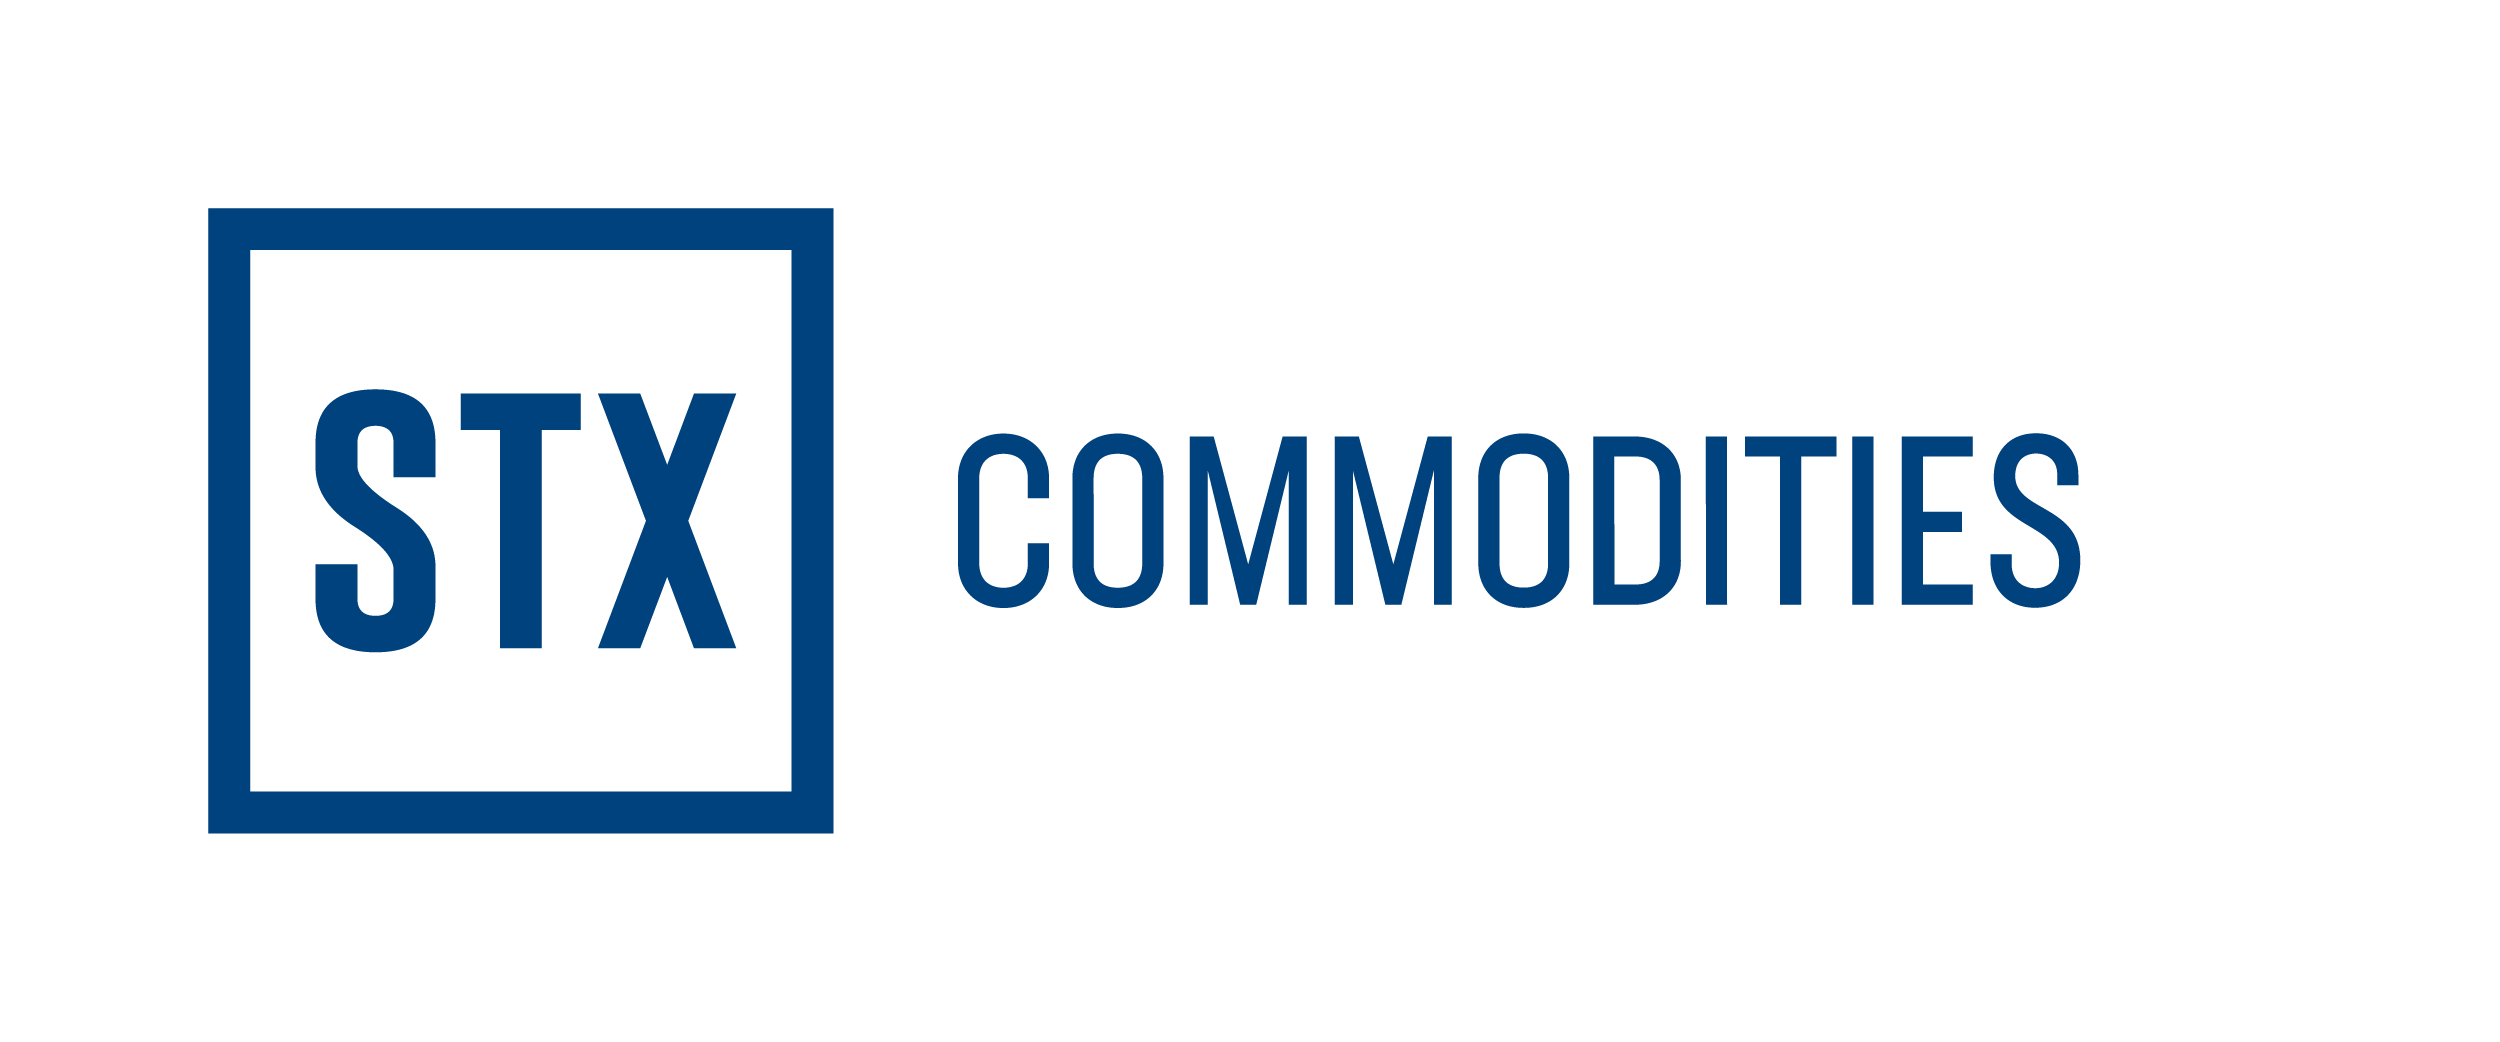 STX Commodities